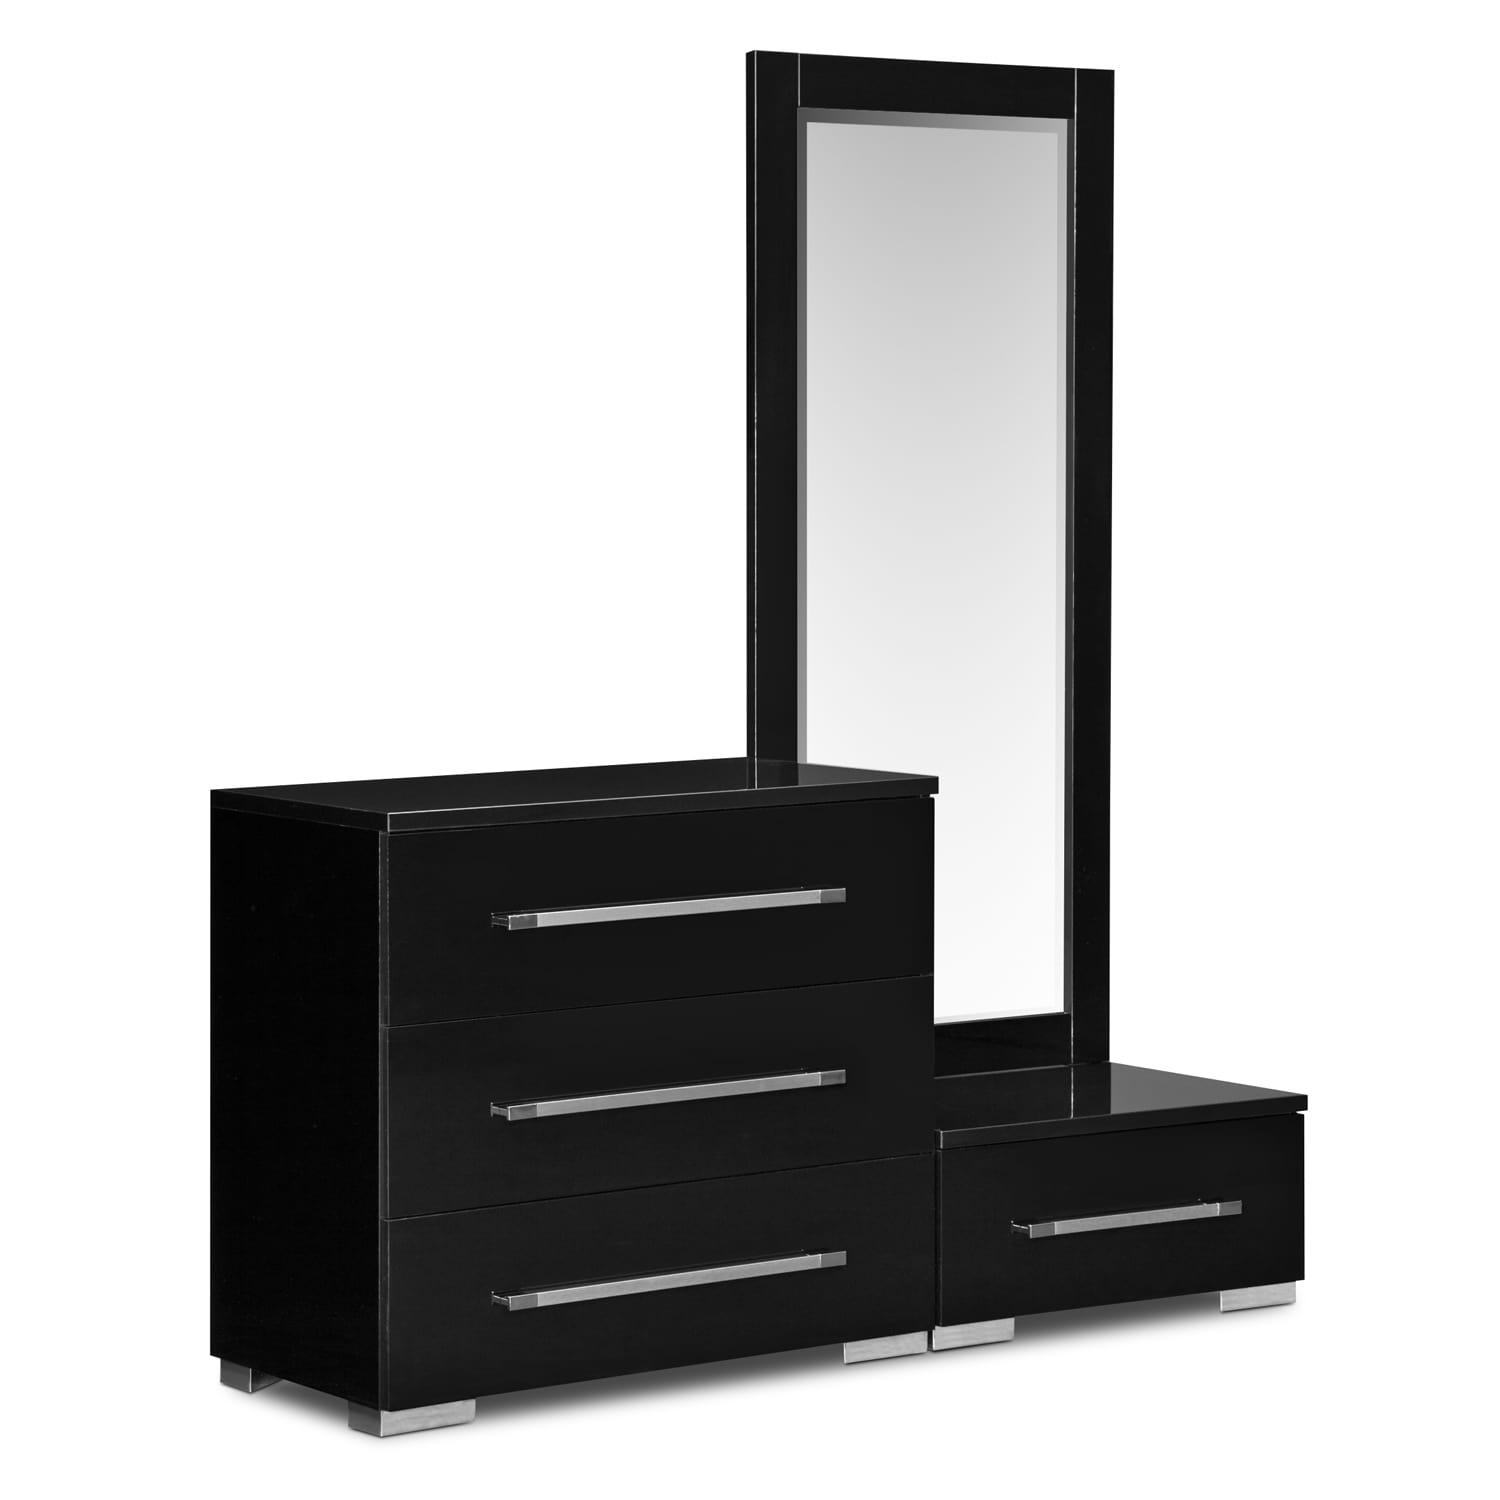 Dimora dressing dresser and mirror with step black Dresser designs for small space